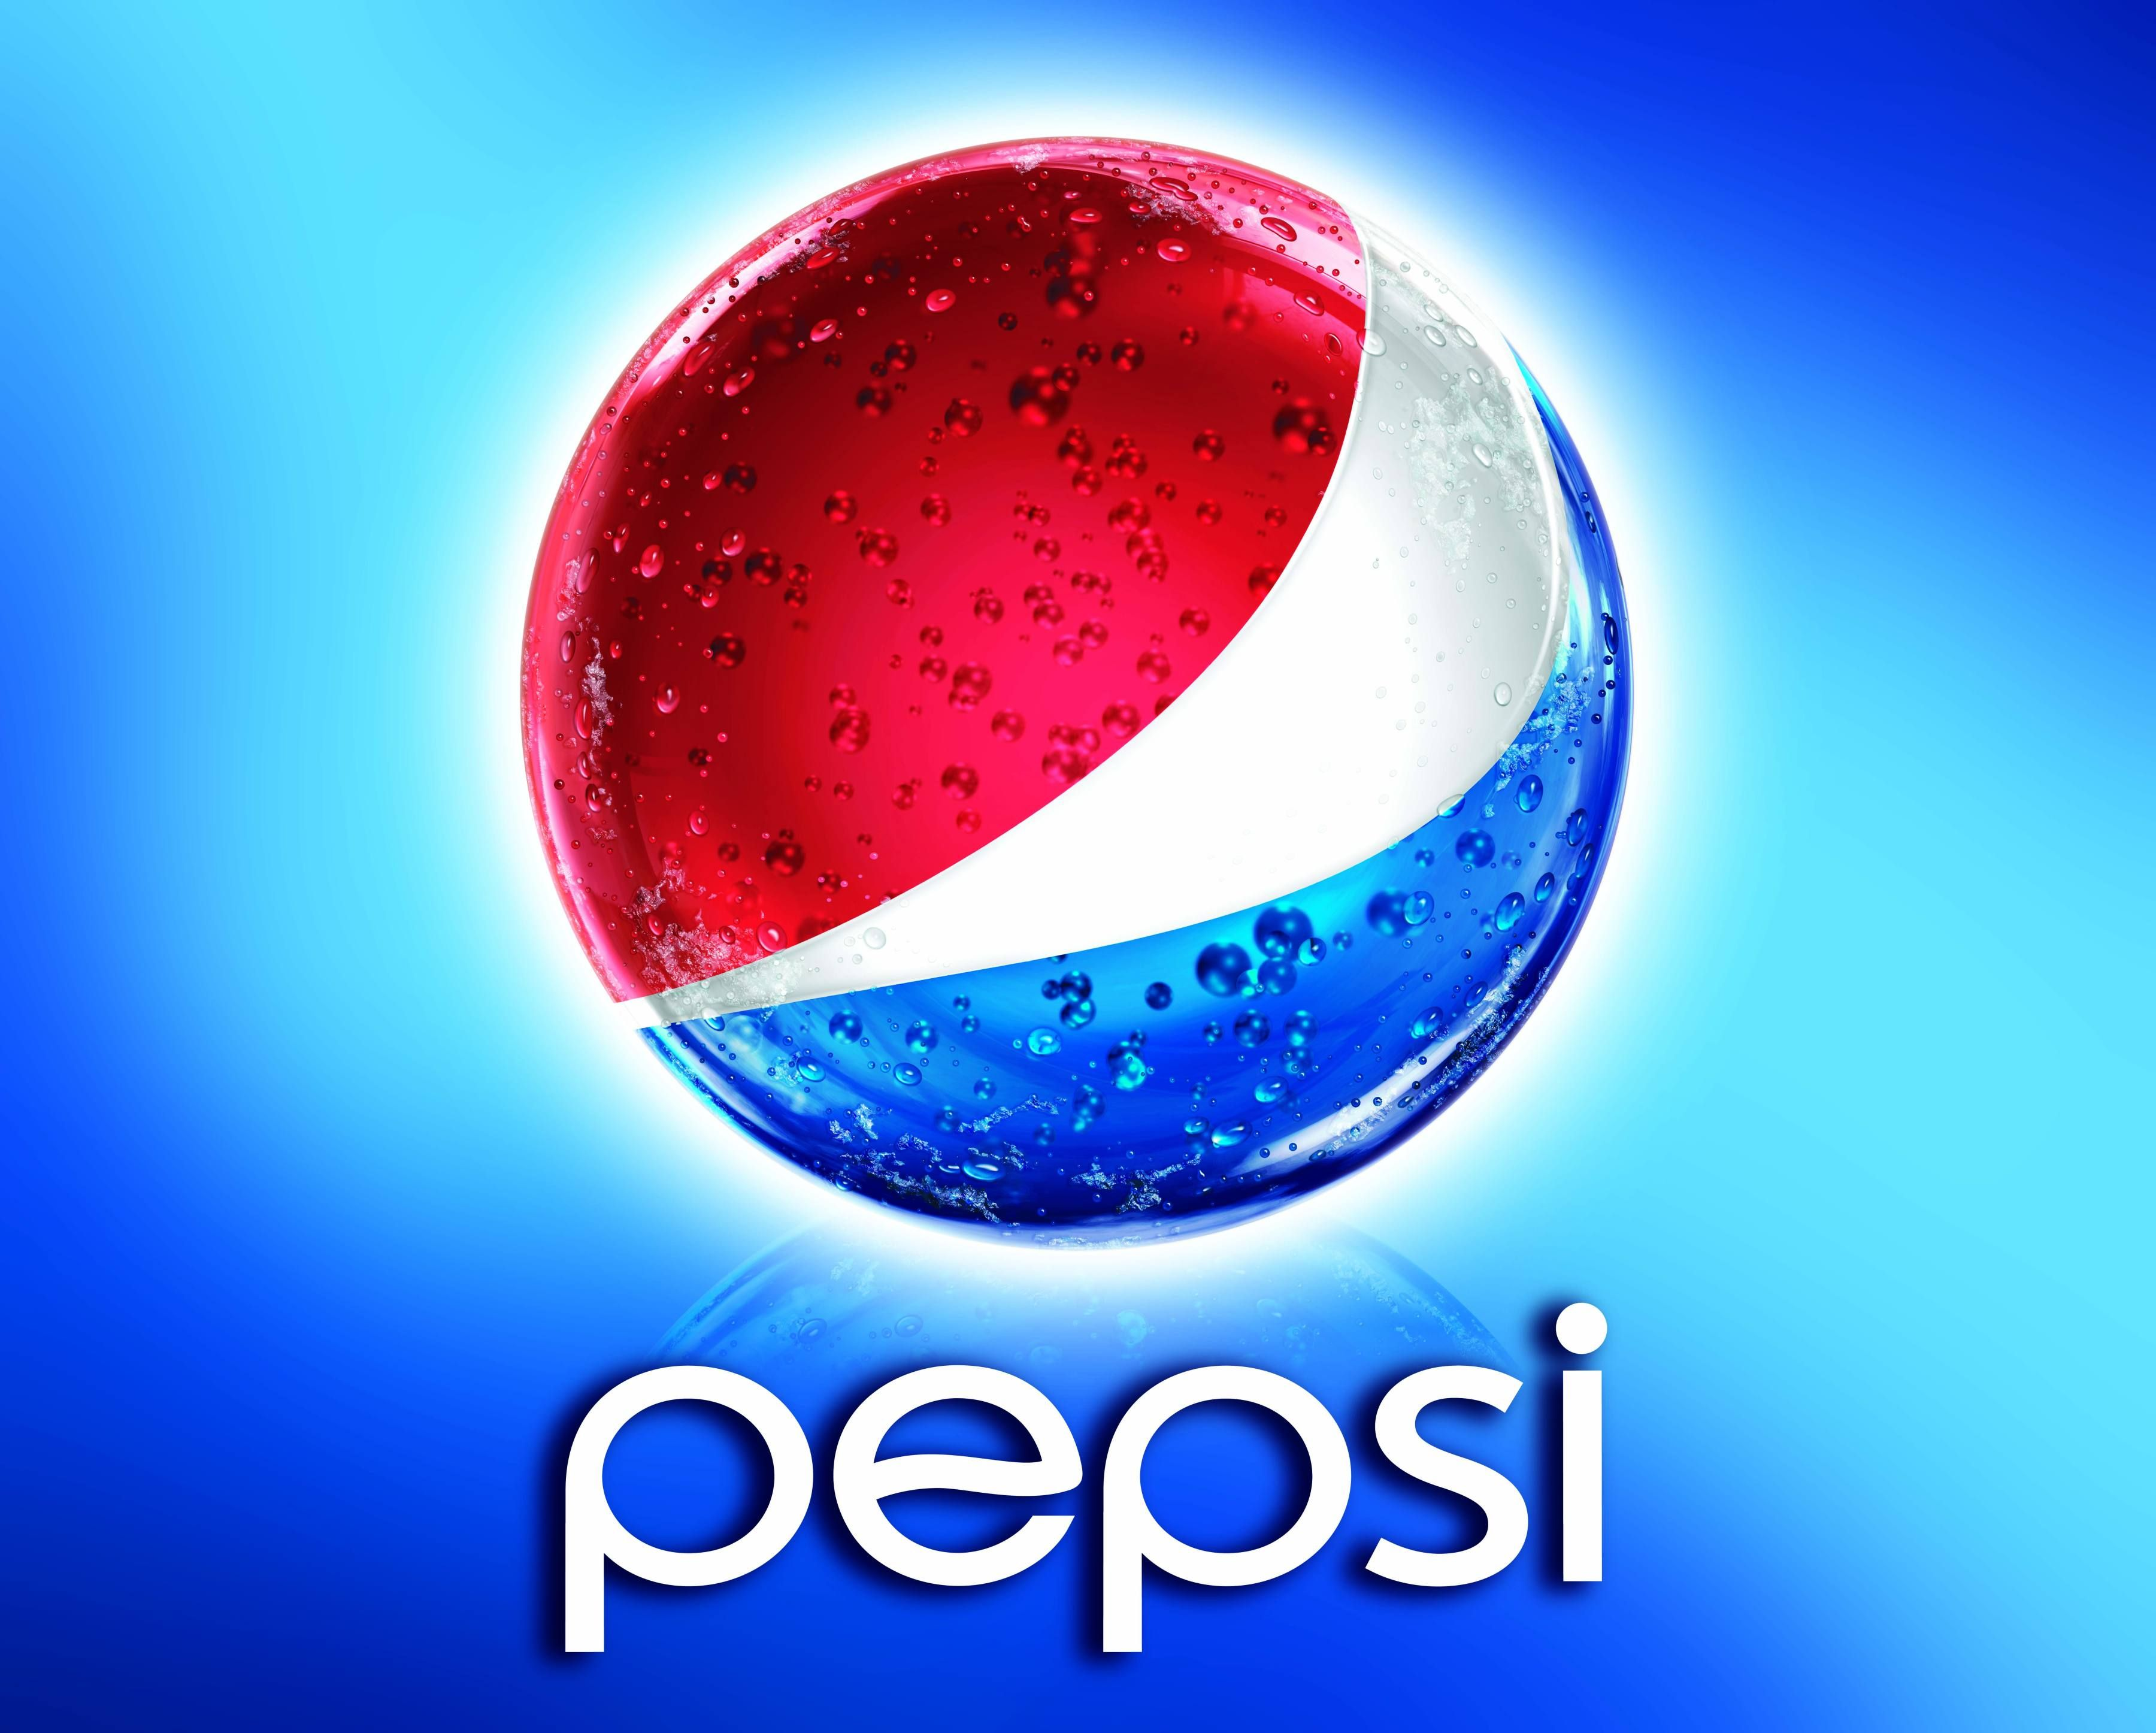 Pepsi Wallpaper 1080p #q64 | Awesomeness in 2019 | Pepsi